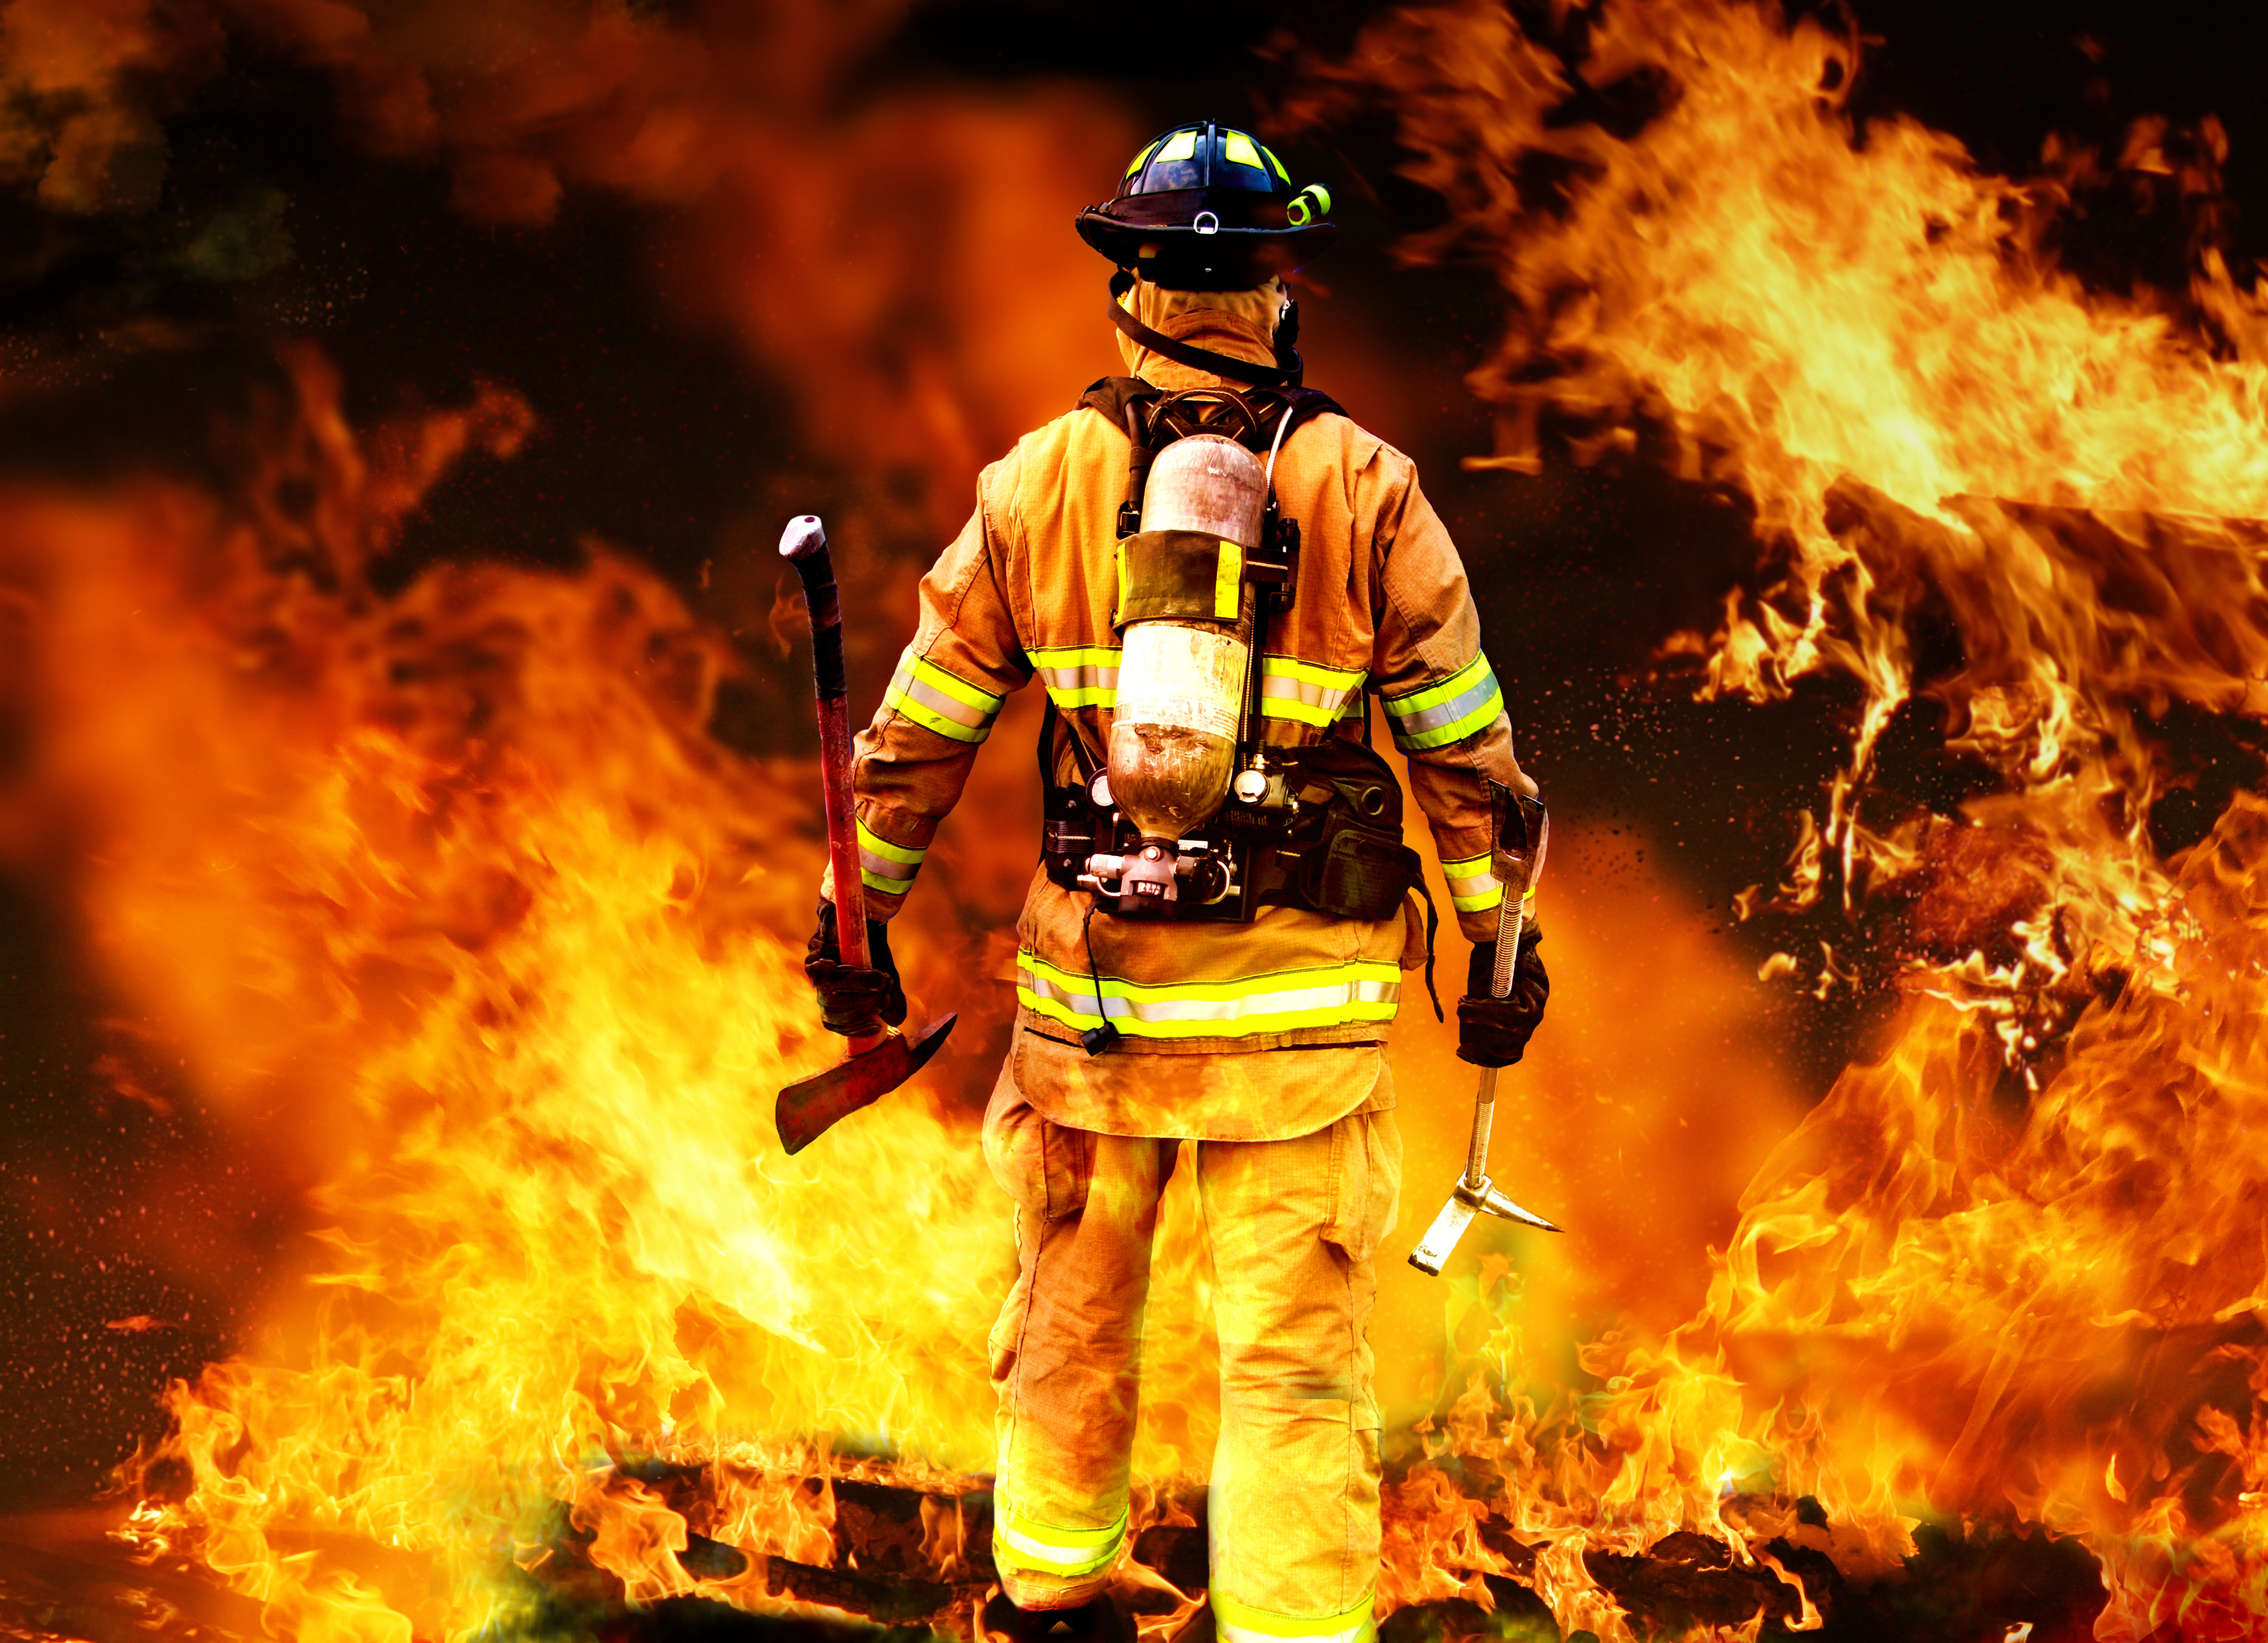 326-Firefighter-Injured-in-Chicago-Fire